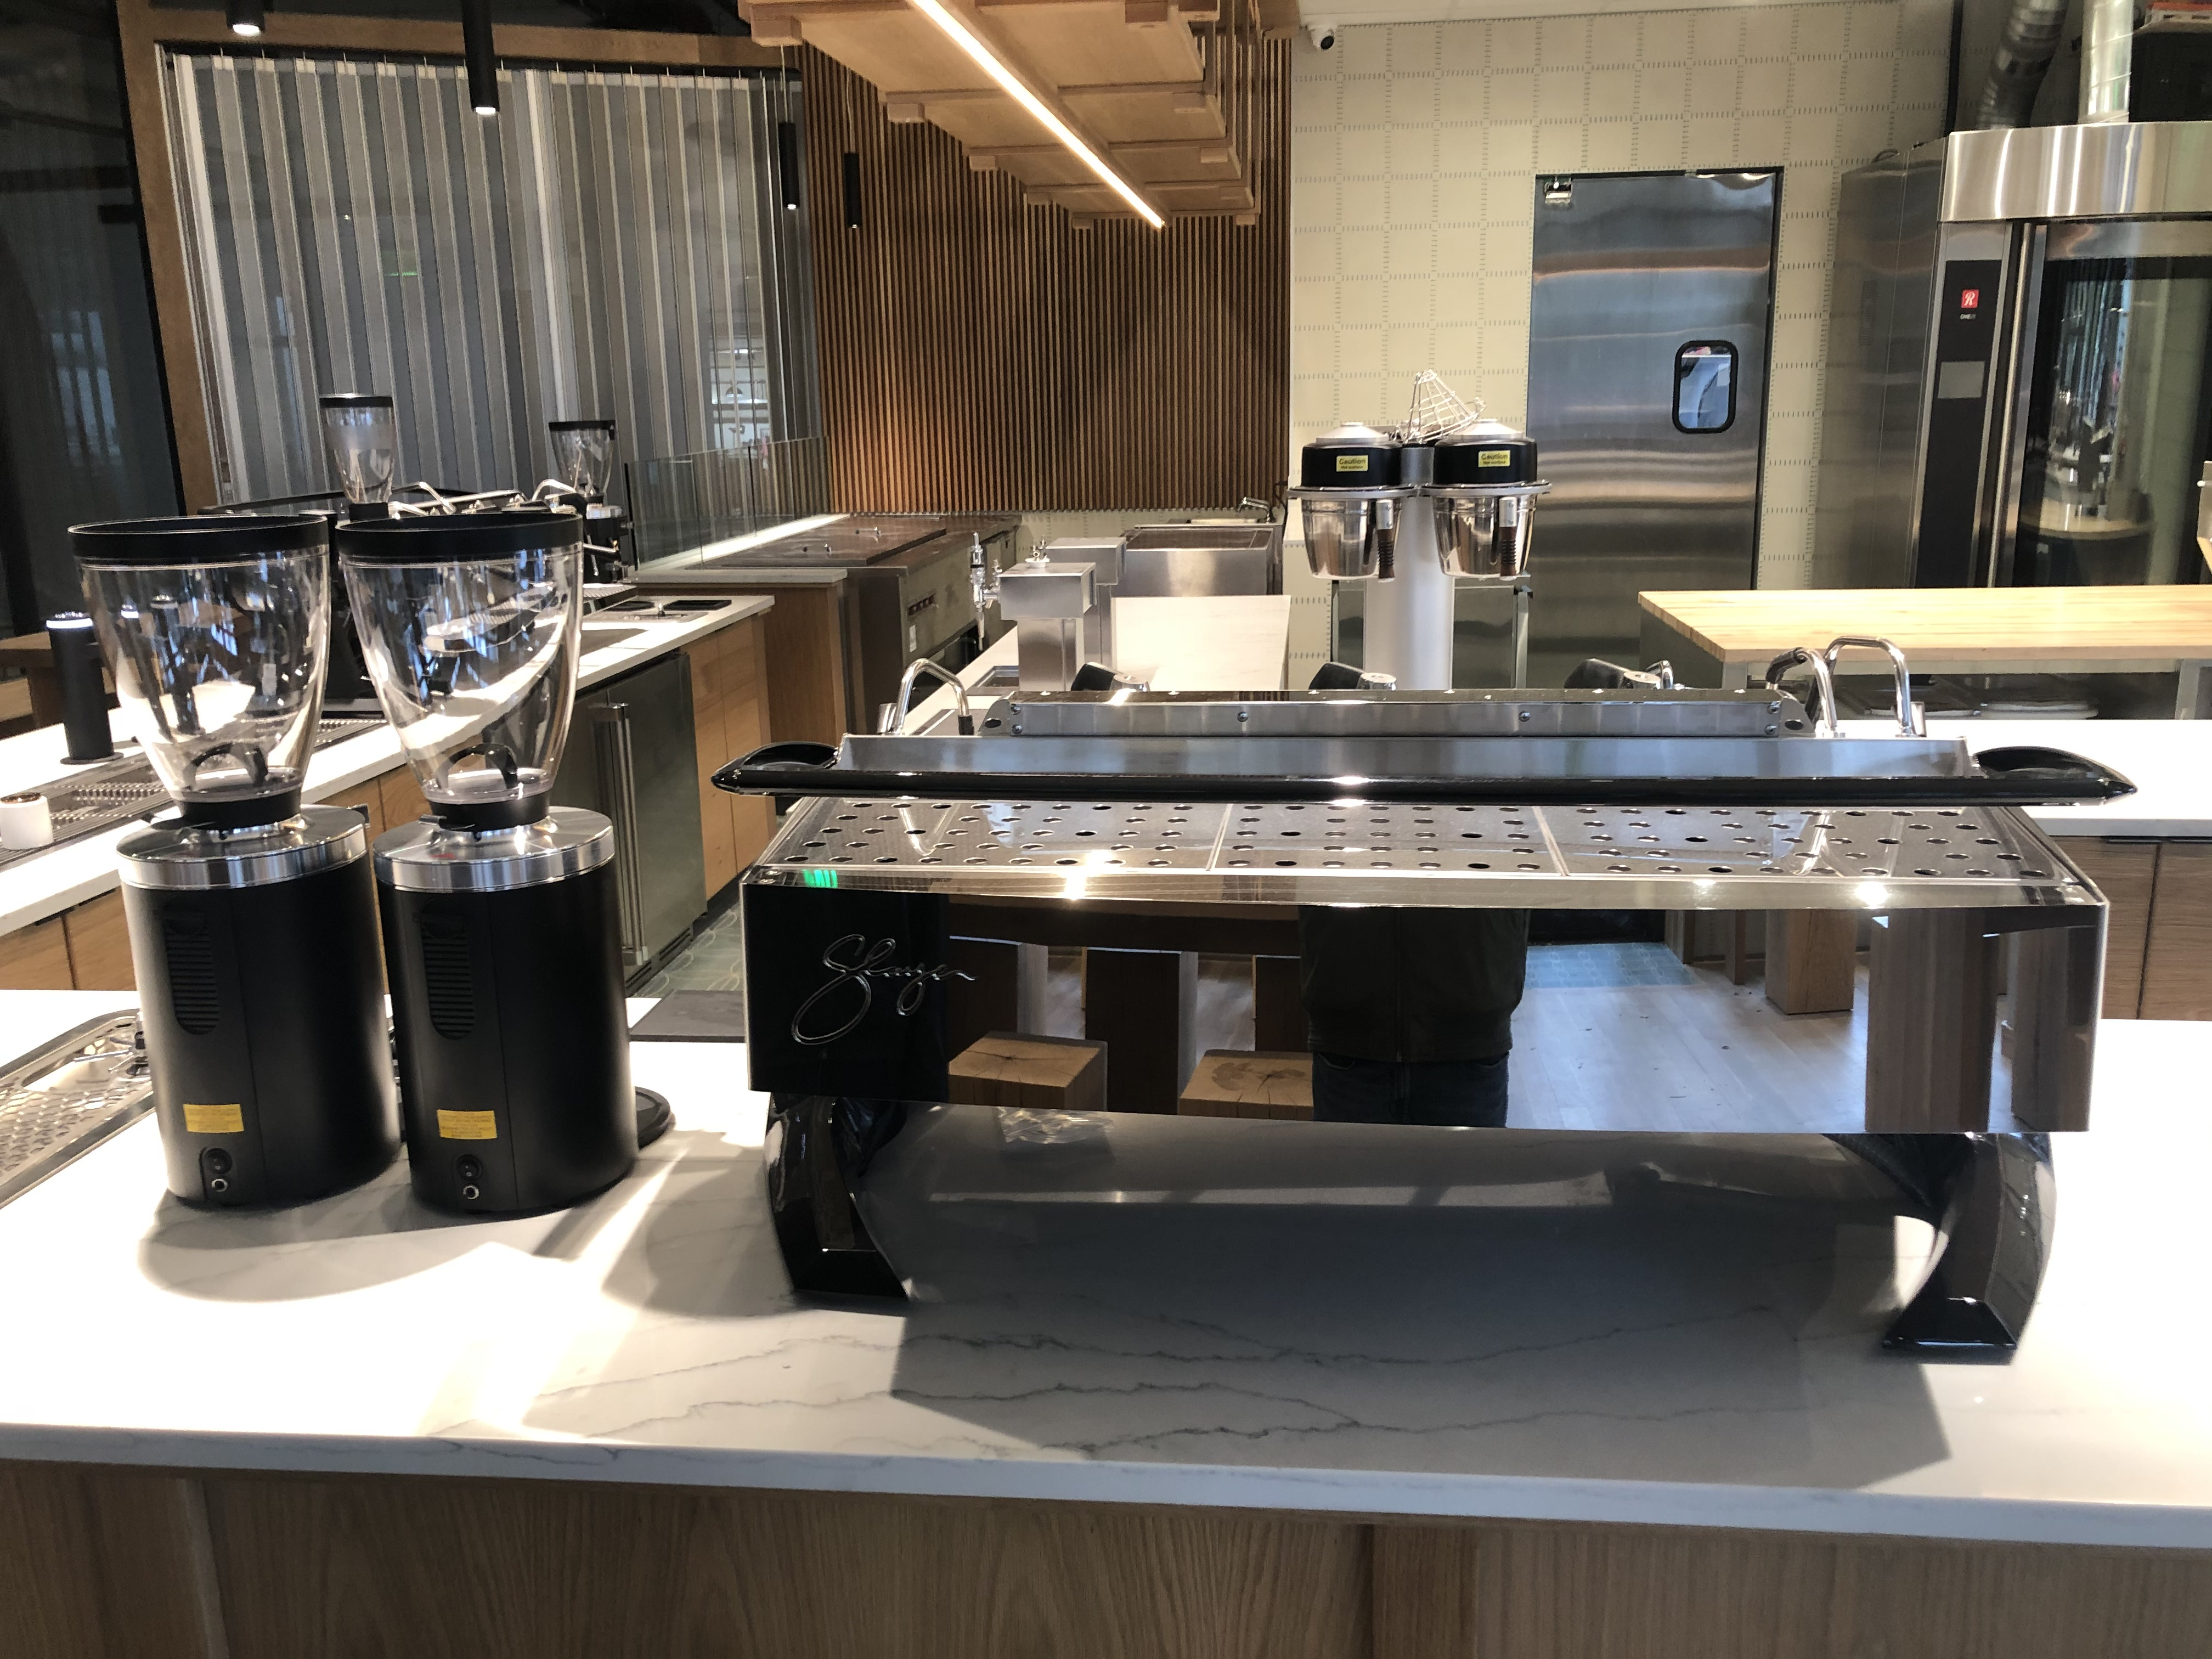 A photo of espresso-making equipment, including a large espresso machine, on the counter at Kaffe Landskap